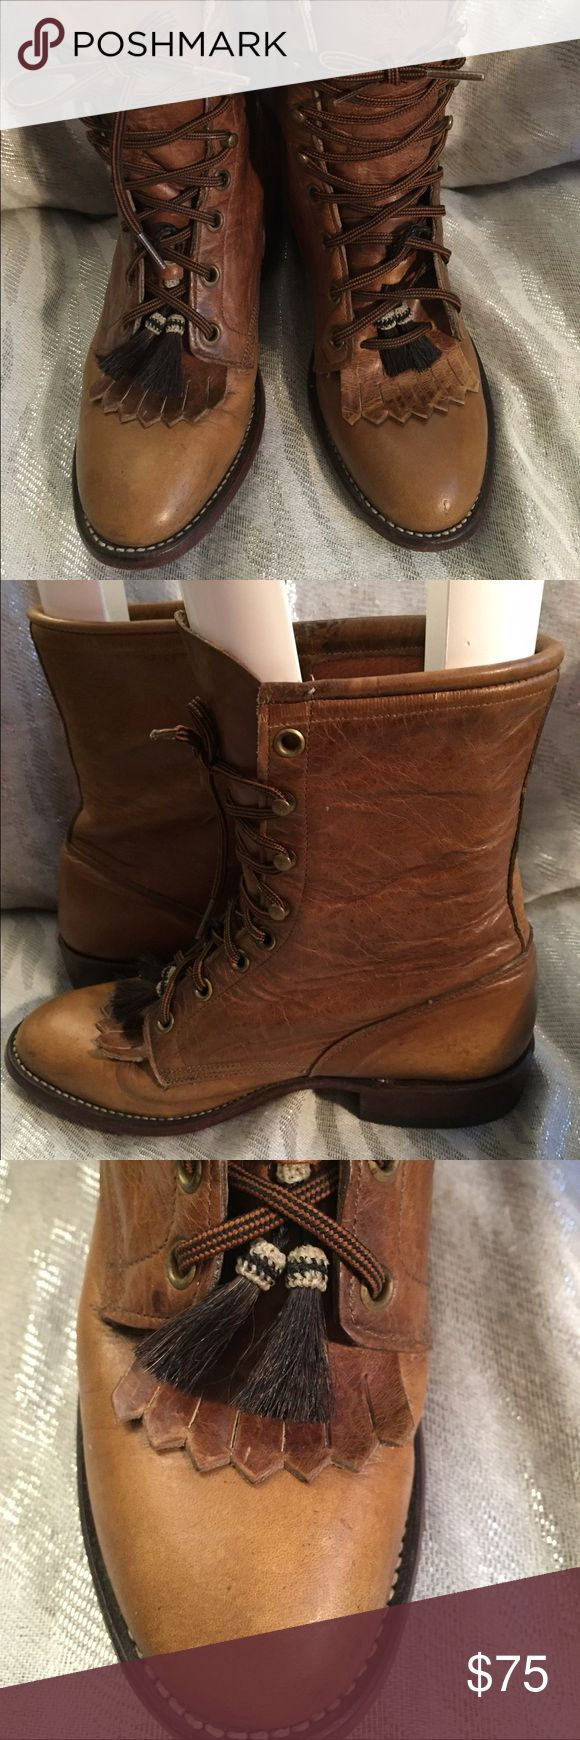 Larry Mahan Tan Leather Ankle Boots Size 6 M Larry Mahan Tan Leather Lace-Up Ankle Boots Western Front Tassel Leather Insole Leather Outsole Women's Size 6 Medium.  Very Good Preowned Condition! Larry Mahan Shoes Ankle Boots & Booties